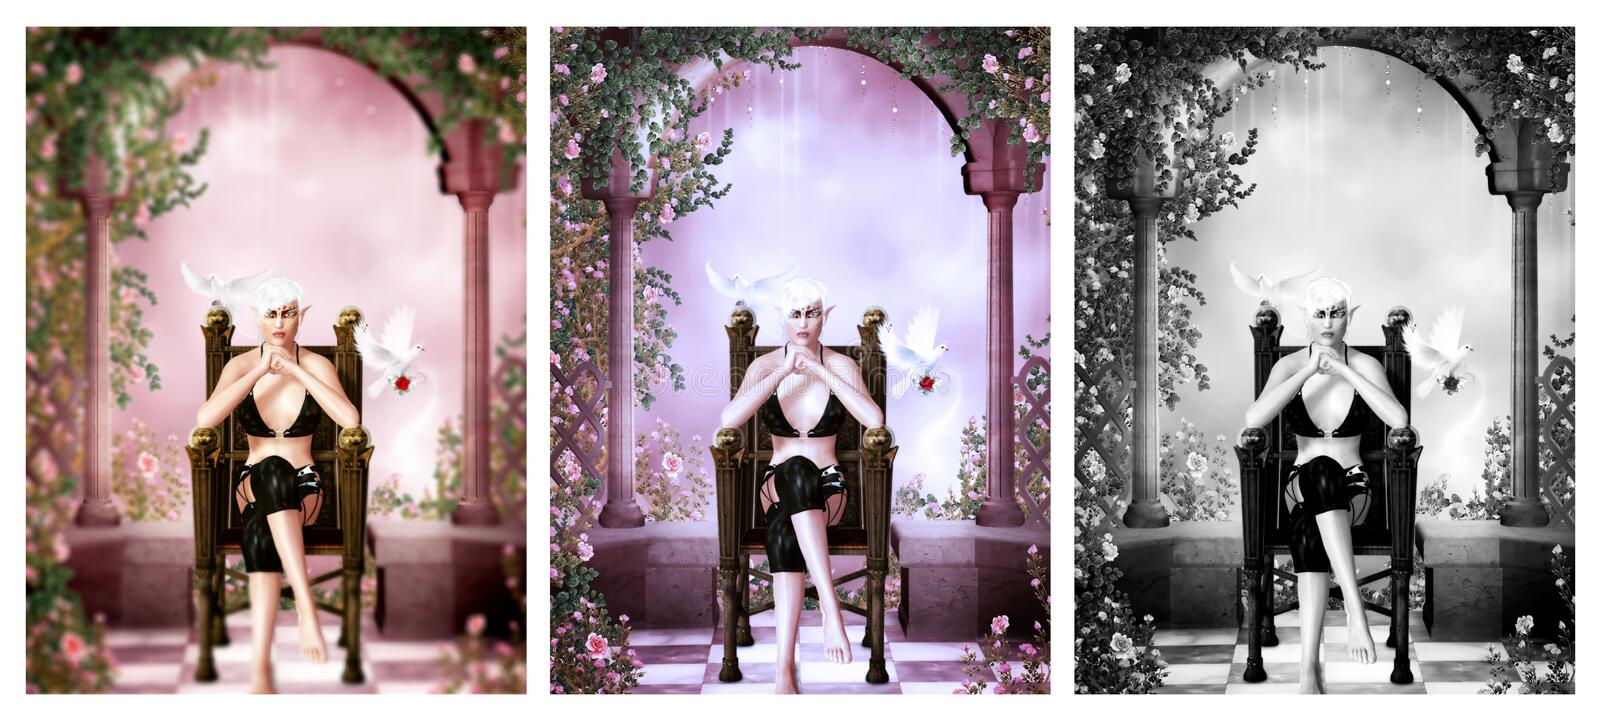 Dreamland's queen royalty free illustration